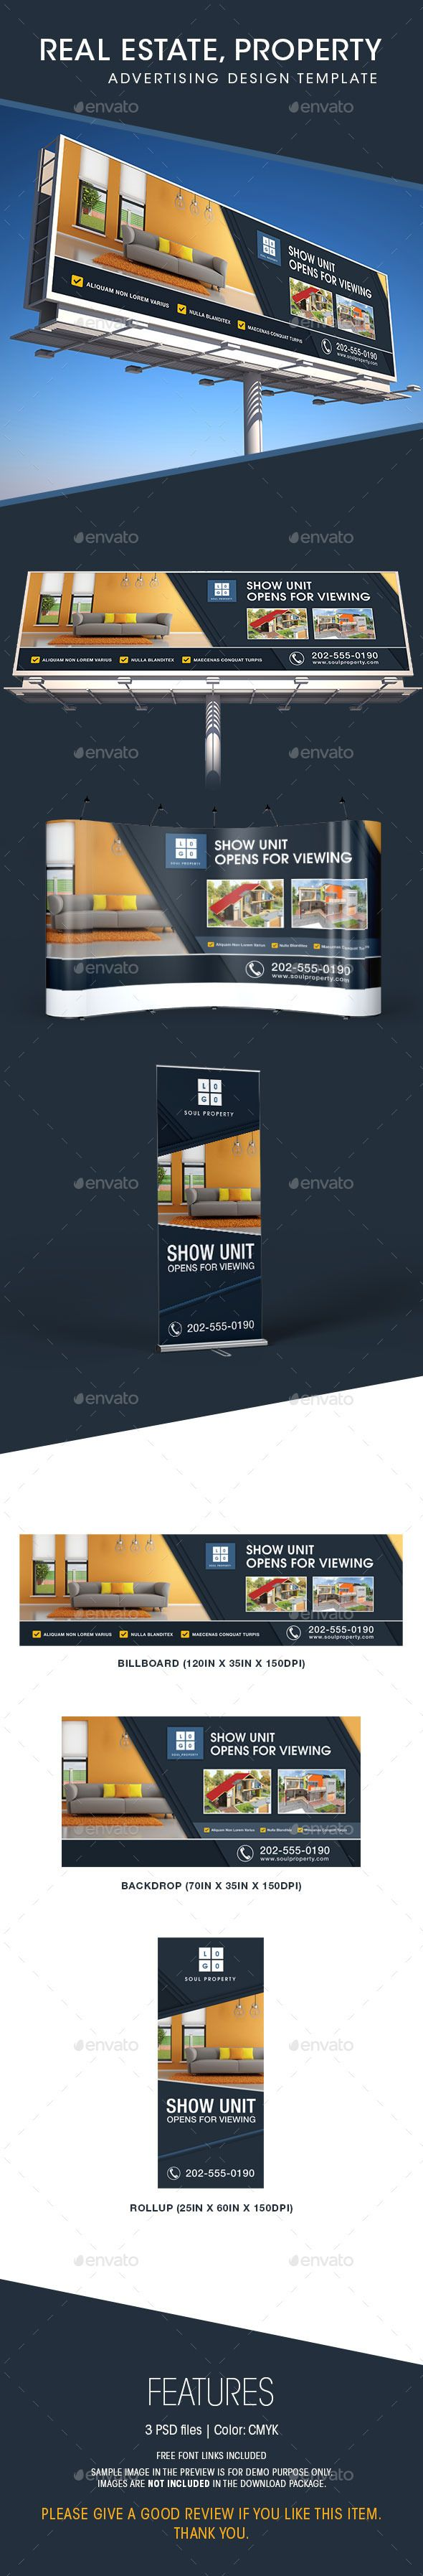 Real Estate - Billboard, Backdrop & Rollup Design Template #design Download: http://graphicriver.net/item/real-estate-billboard-backdrop-rollup-design/11580370?ref=ksioks